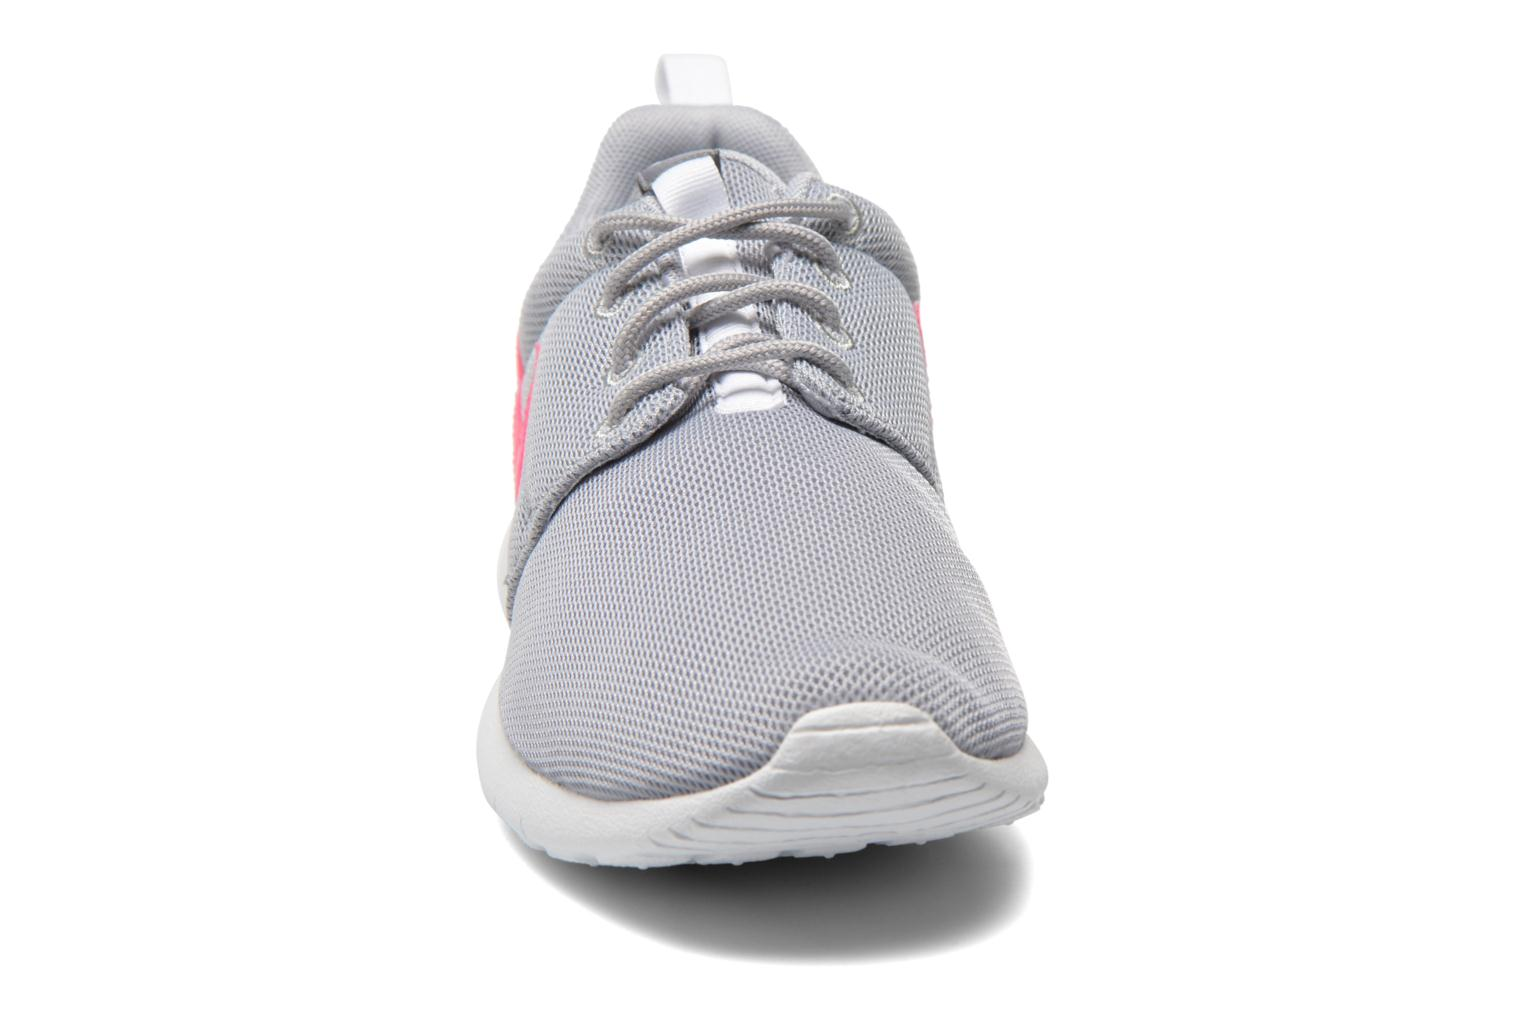 NIKE ROSHE ONE (GS) Wolf Grey/Hypr Pink-Cl Gry-Wht